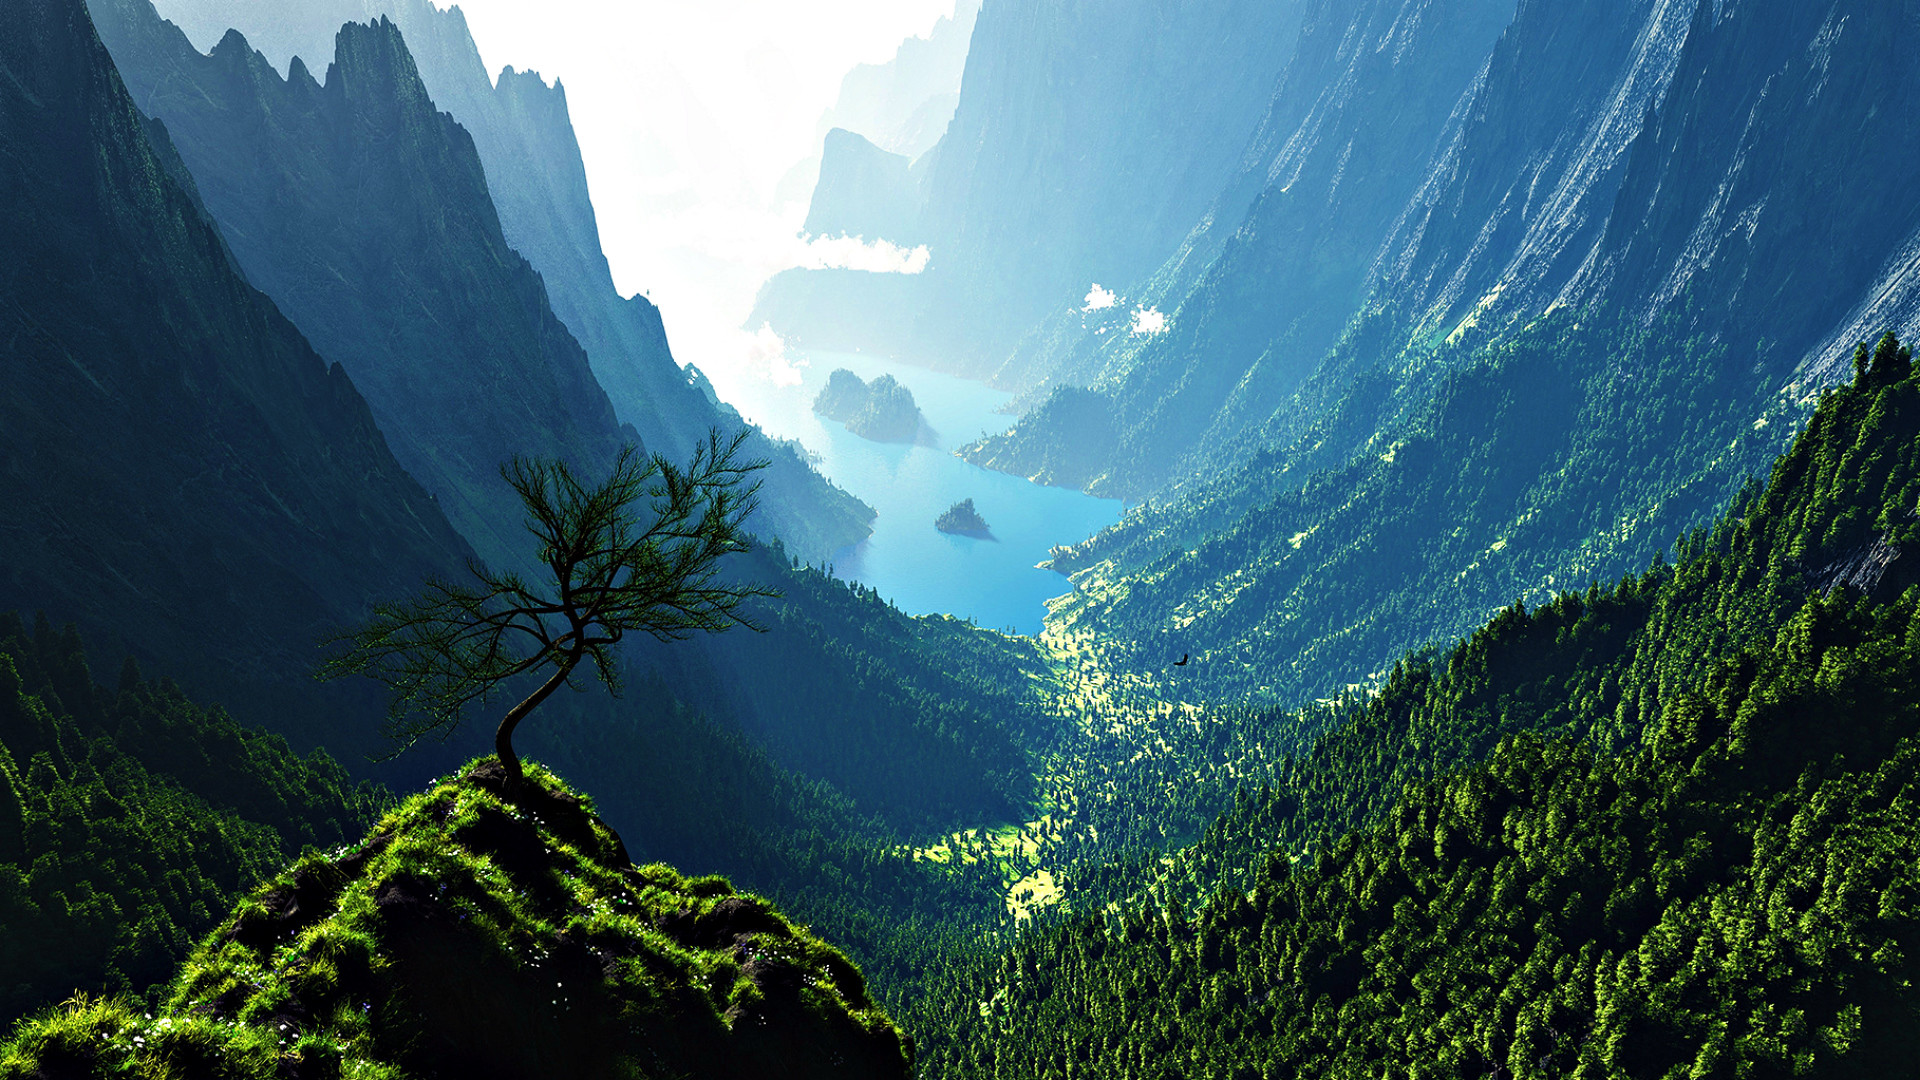 Mountain Valley Backgrounds